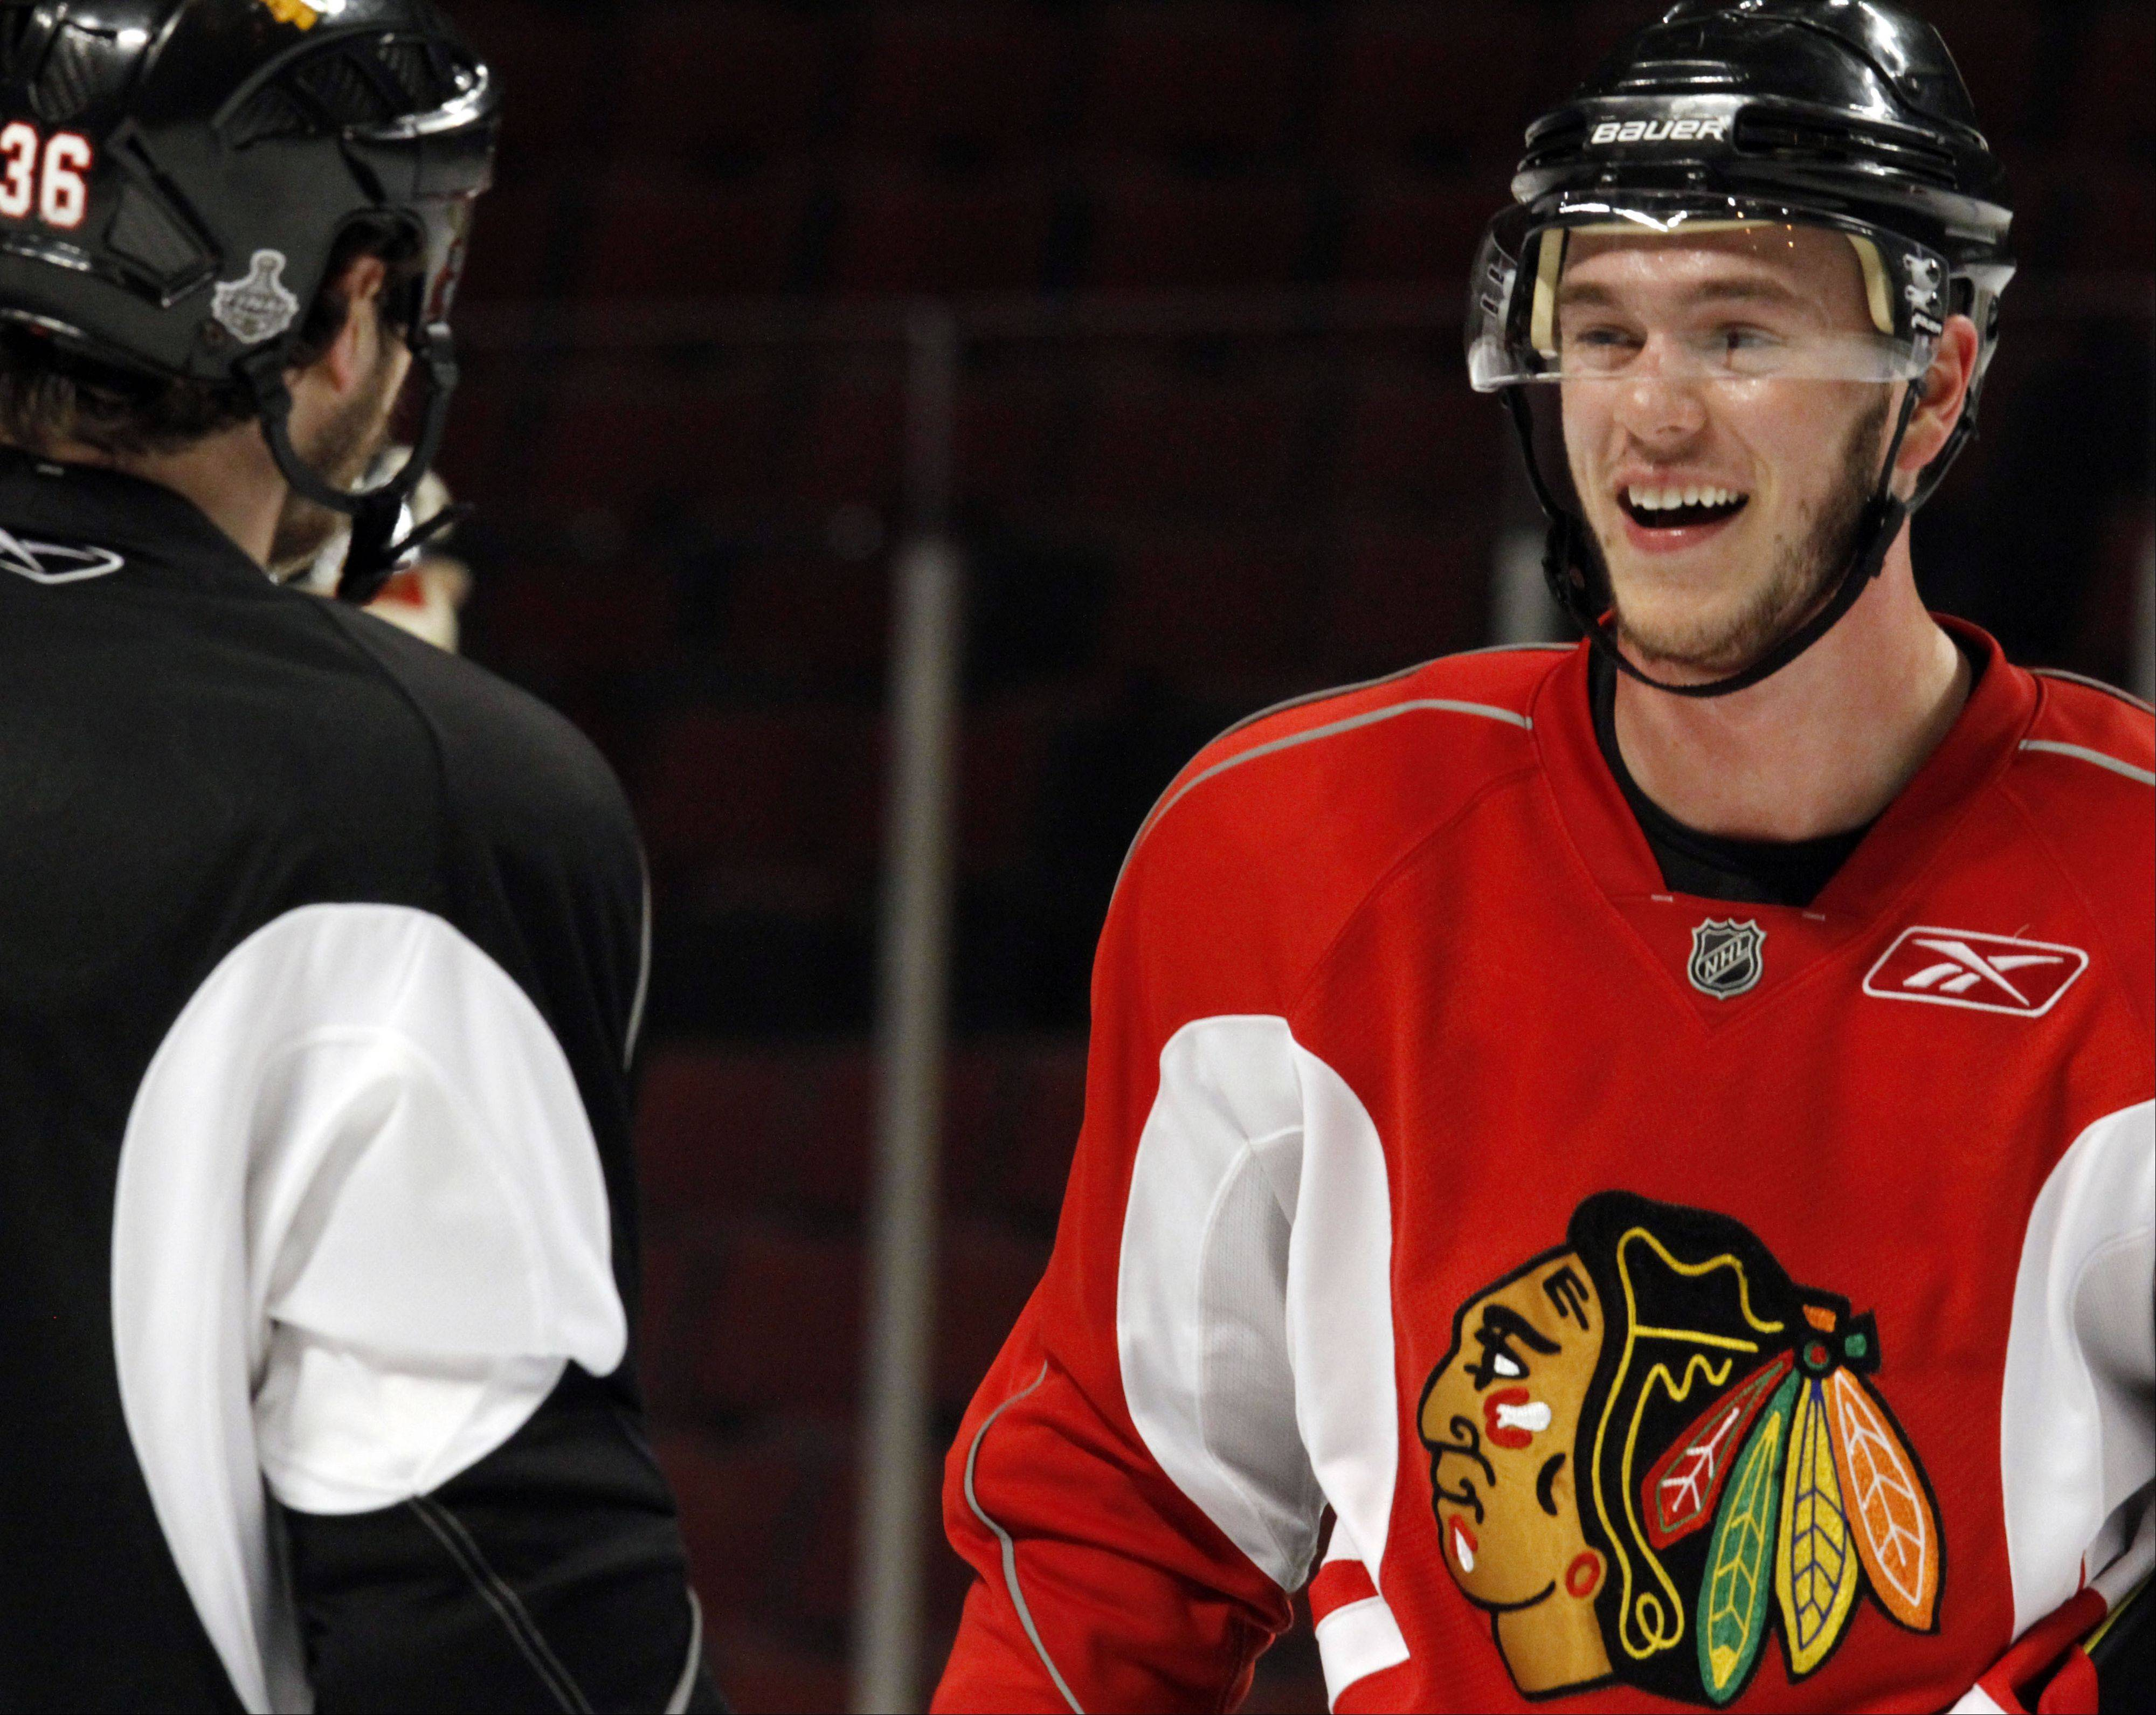 The Blackhawks' Jonathan Toews says there is work to be done to win back those NHL fans bitter over the lockout.